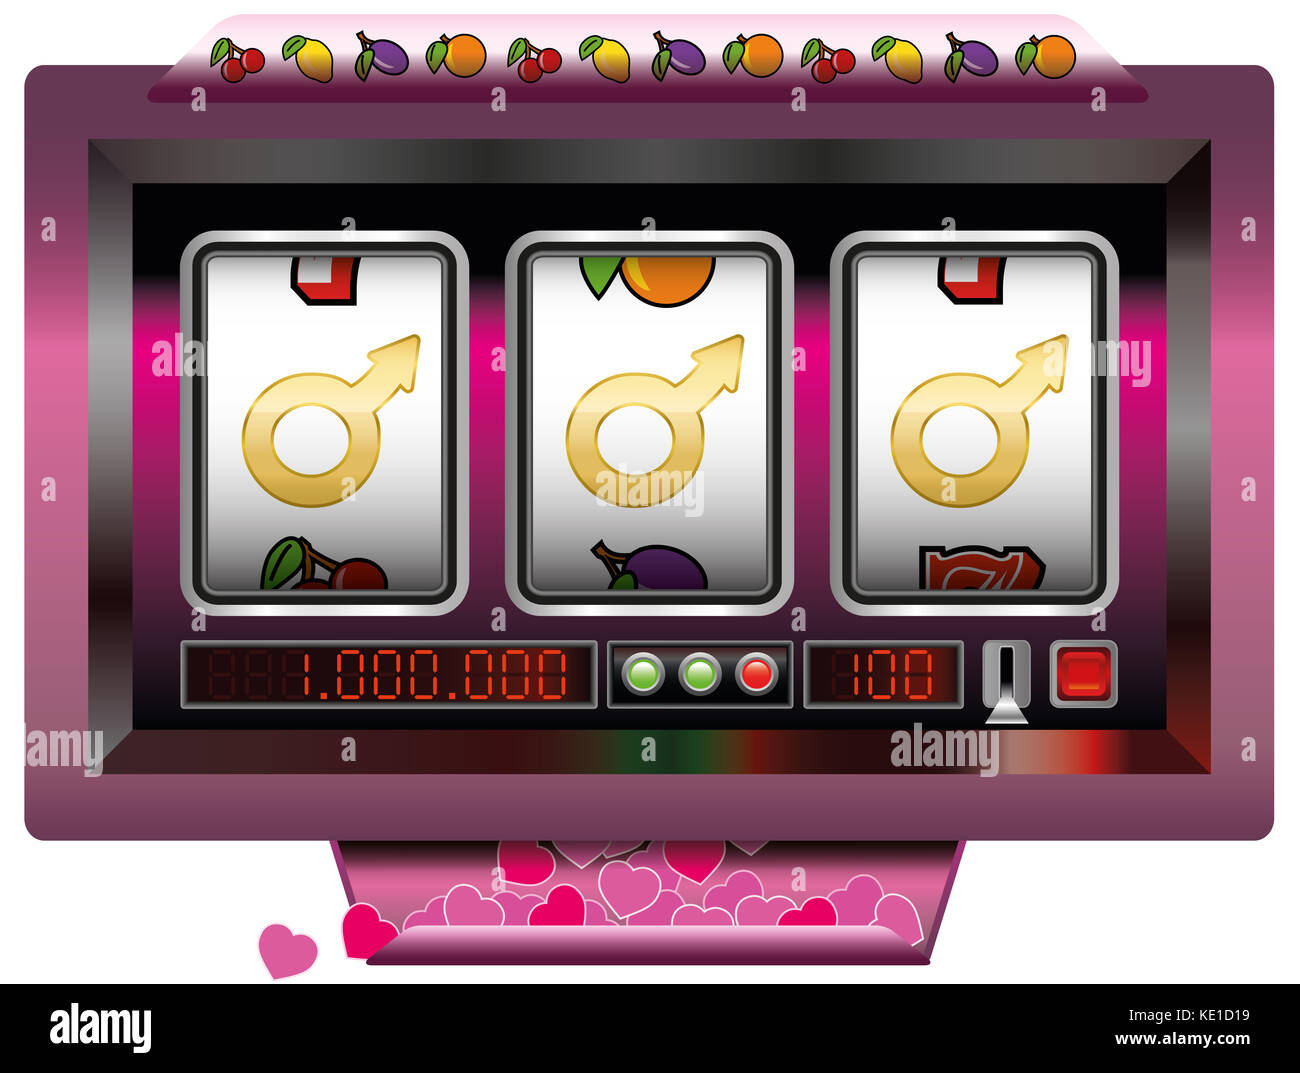 Dream lover win with slot machine - symbol for having good fortune to find the ideal man - slot machine jackpot - Stock Image